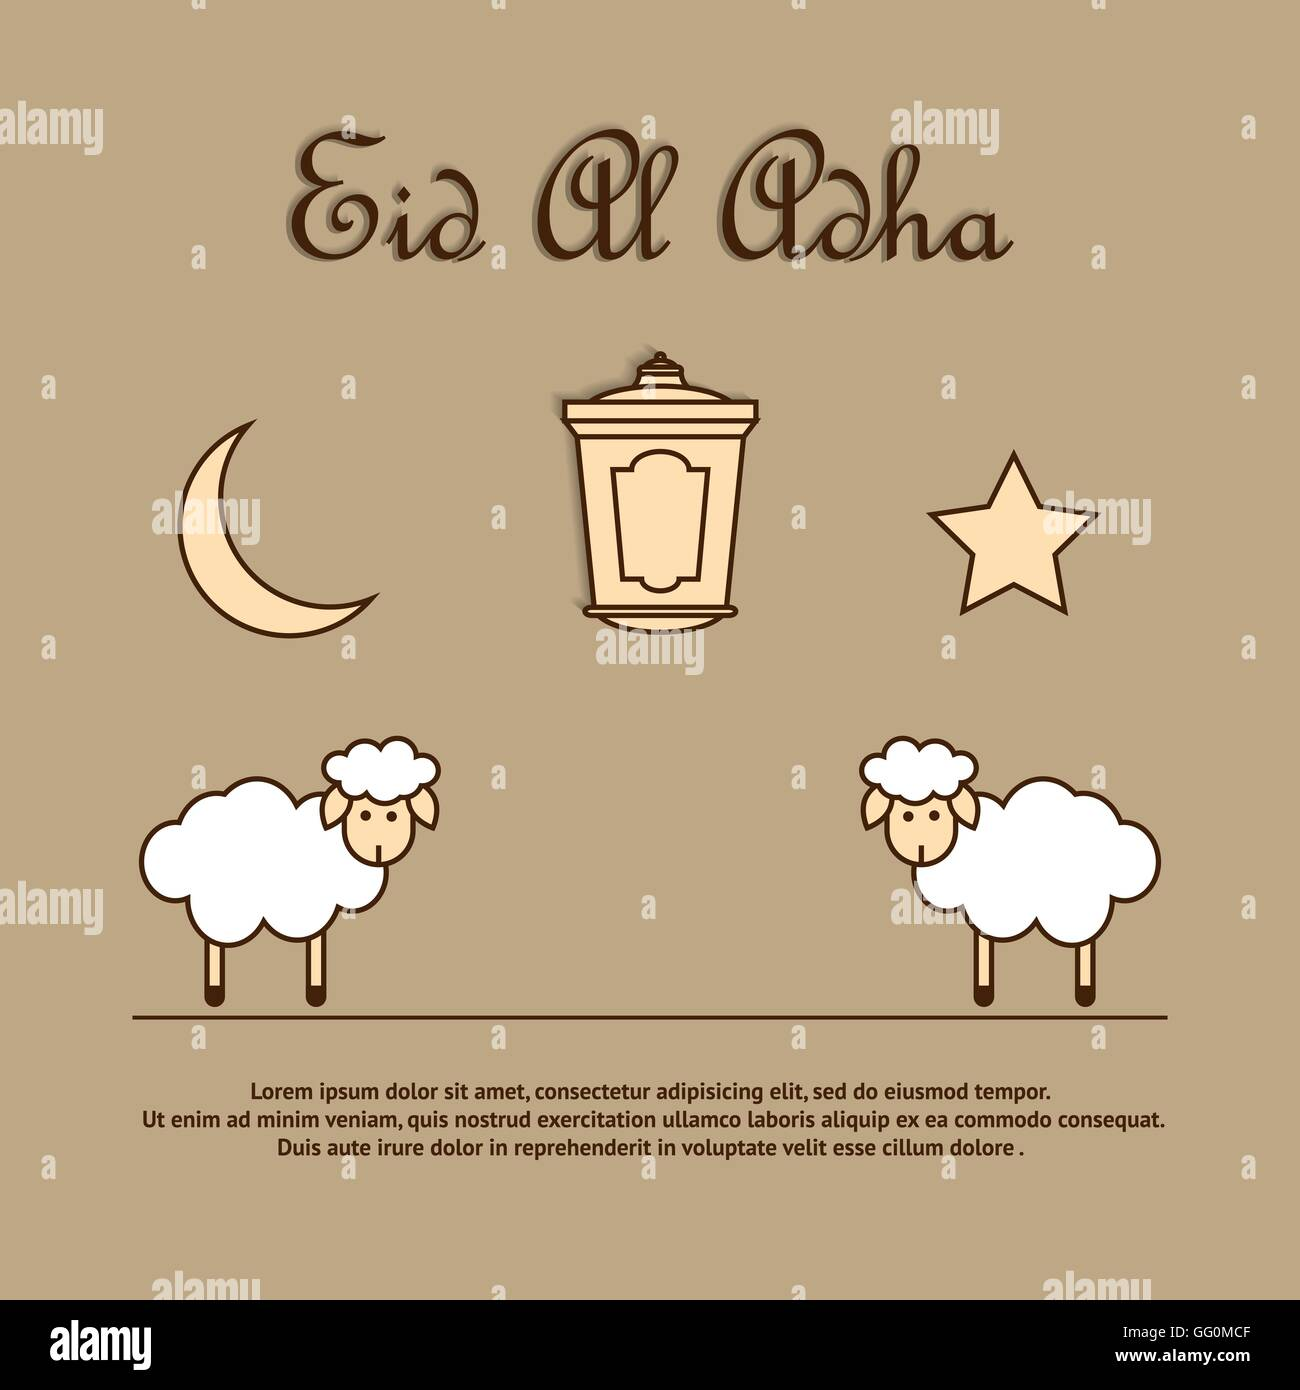 Greeting card template for eid ul adha with sheep stock vector art greeting card template for eid ul adha with sheep m4hsunfo